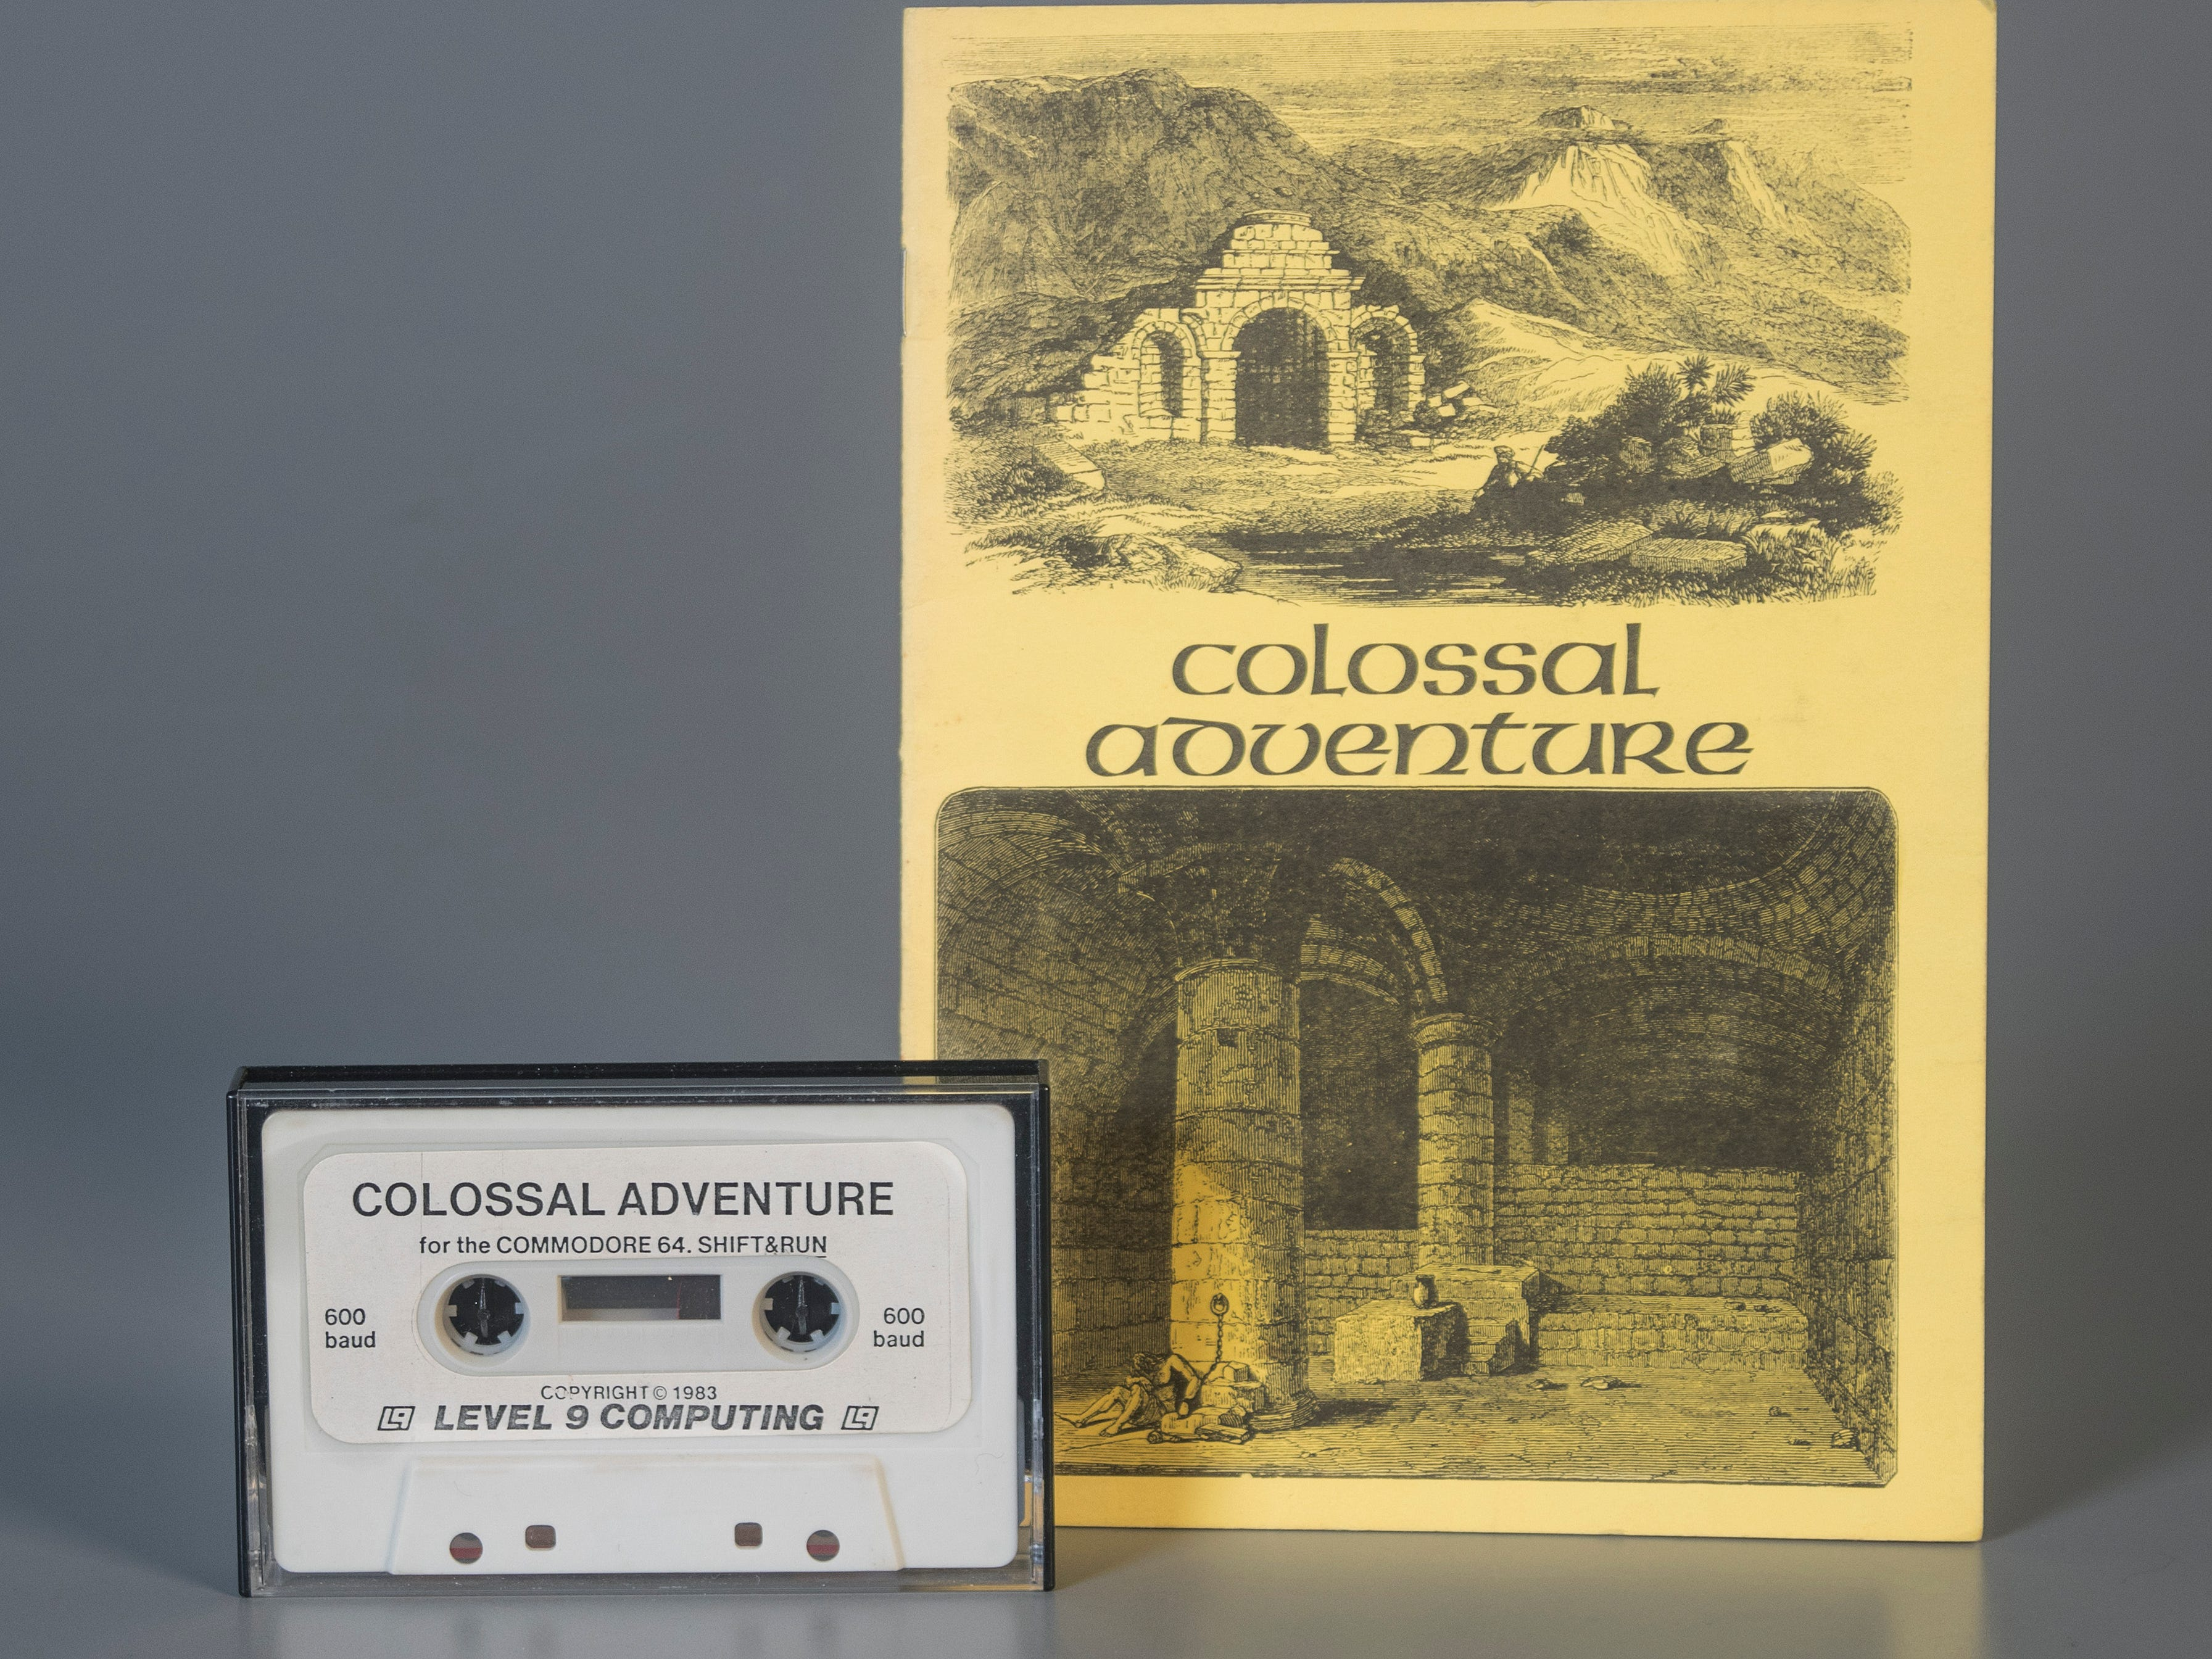 Colossal Cave Adventure was inducted into the World Video Game Hall of Fame in 2019 at The Strong National Museum of Play in Rochester, New York.